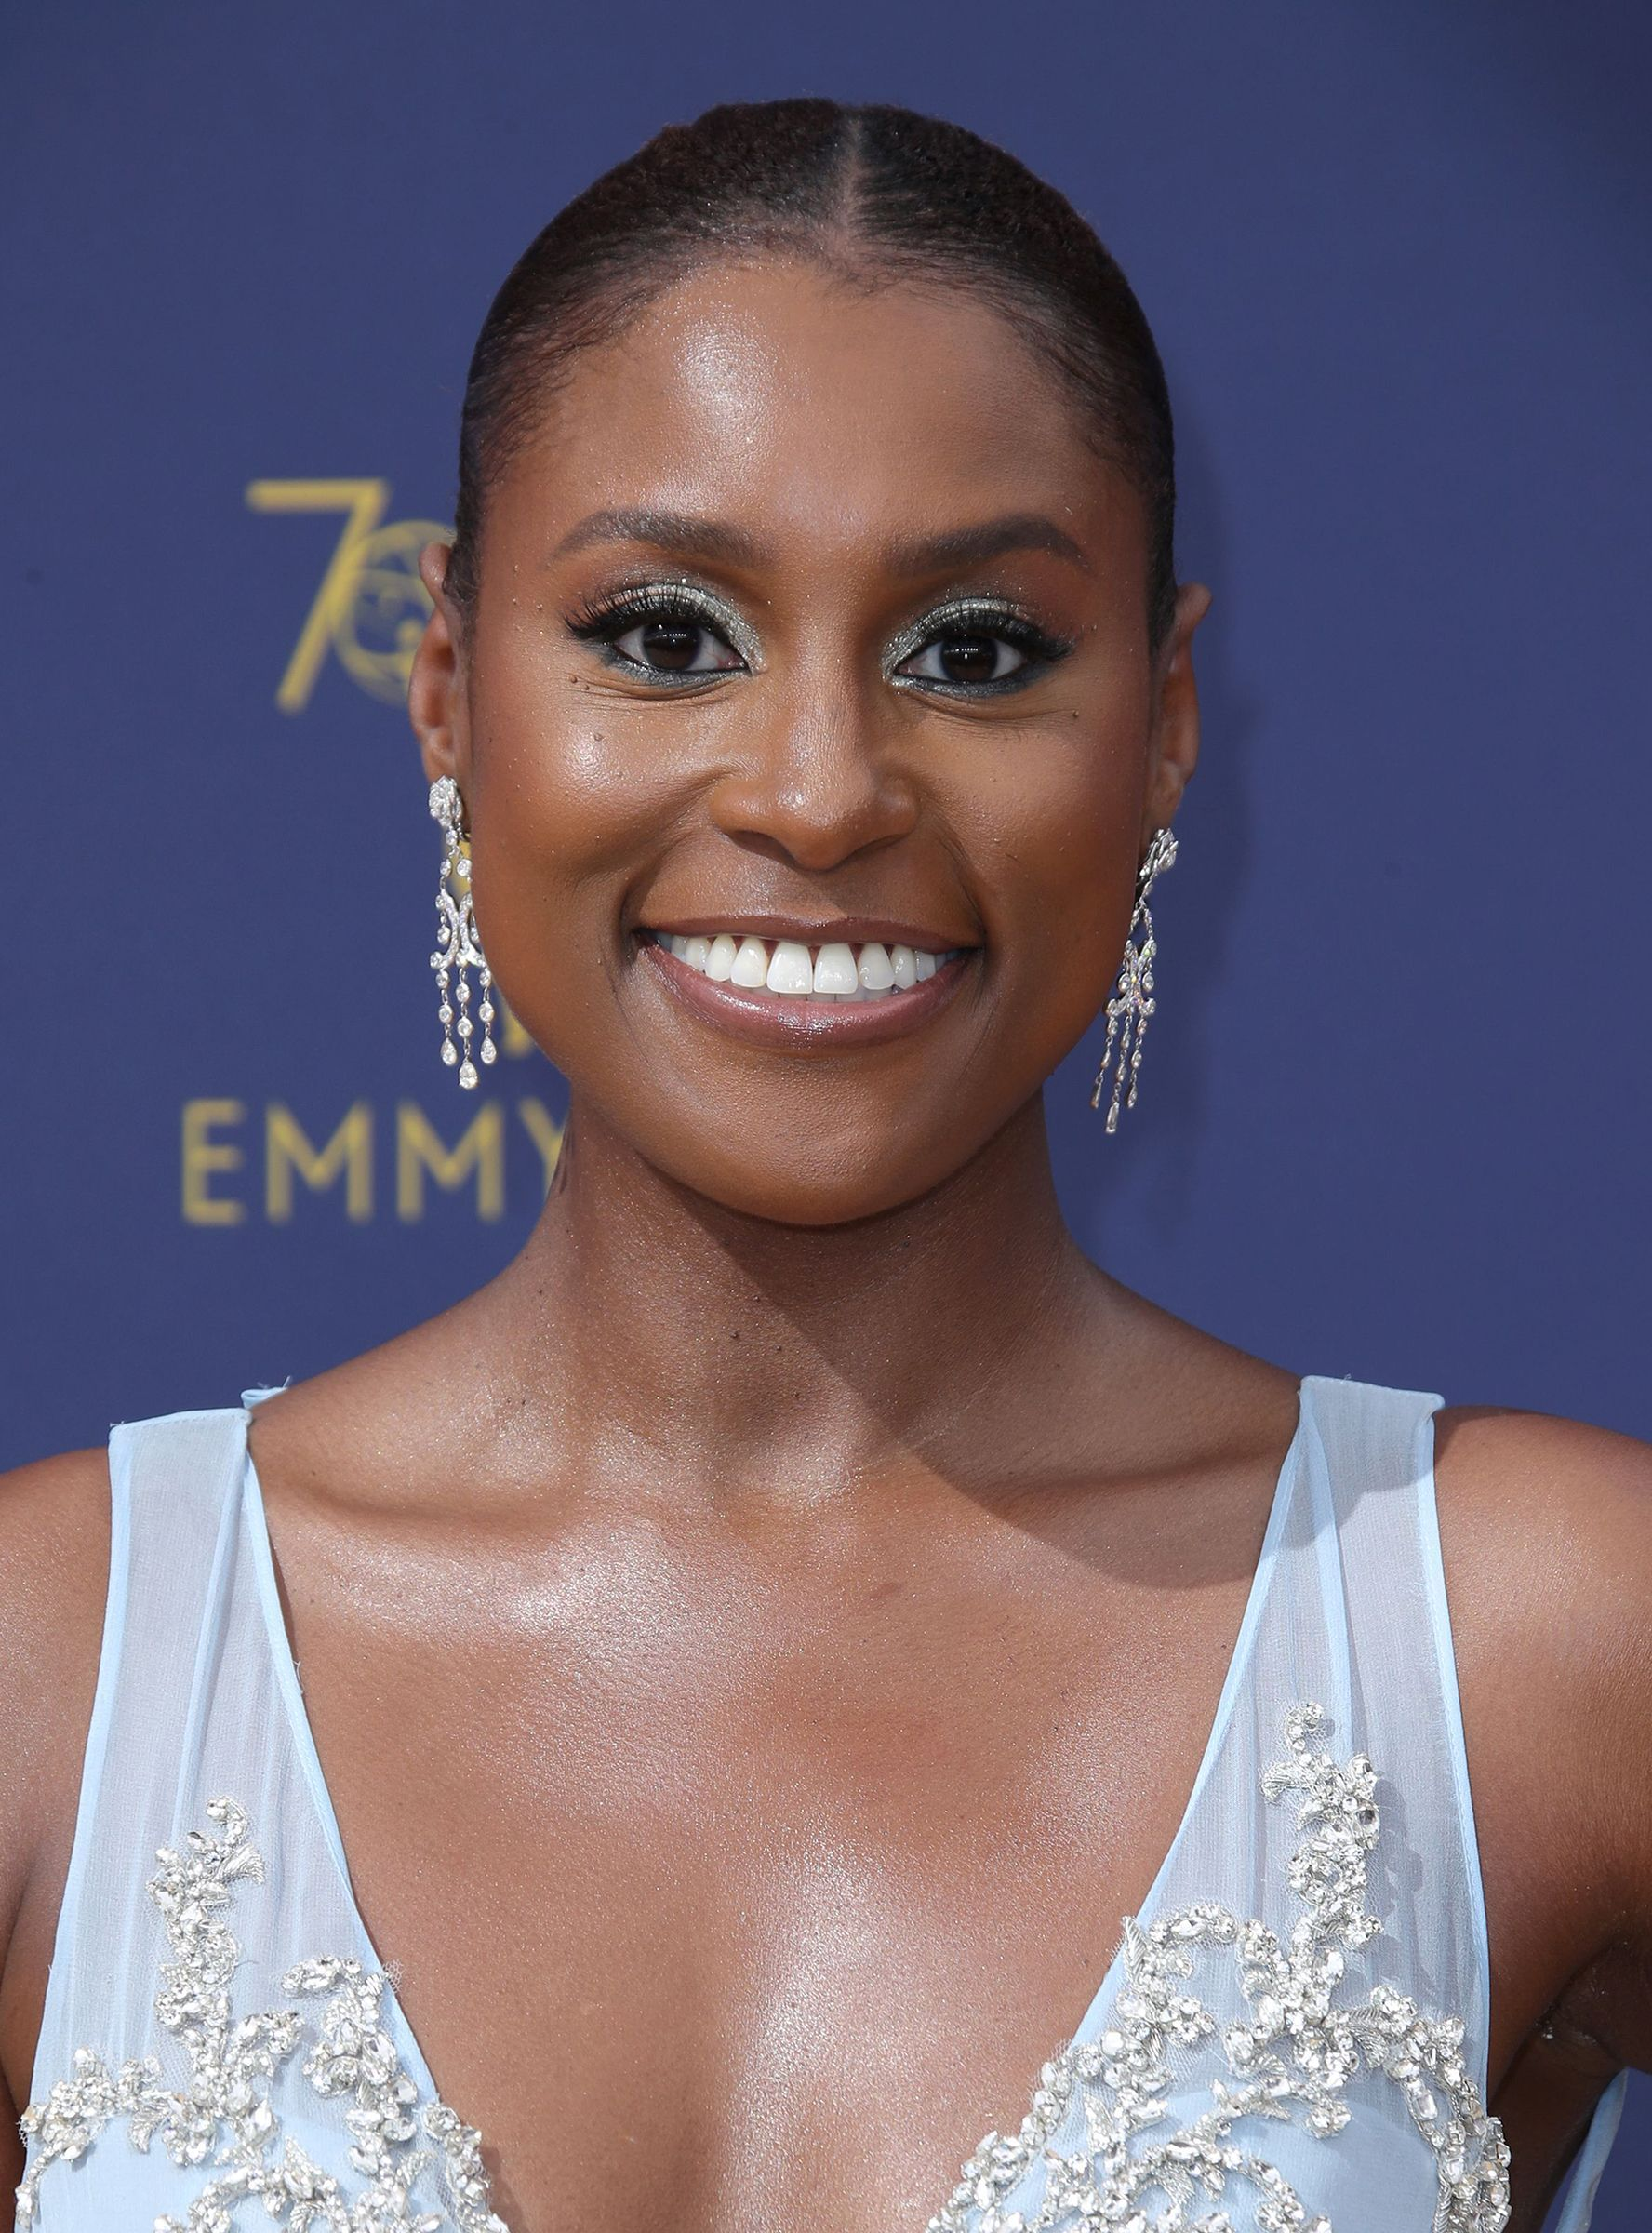 Issa Rae's Emmys Makeup Cost Less Than 50 — & We Have All